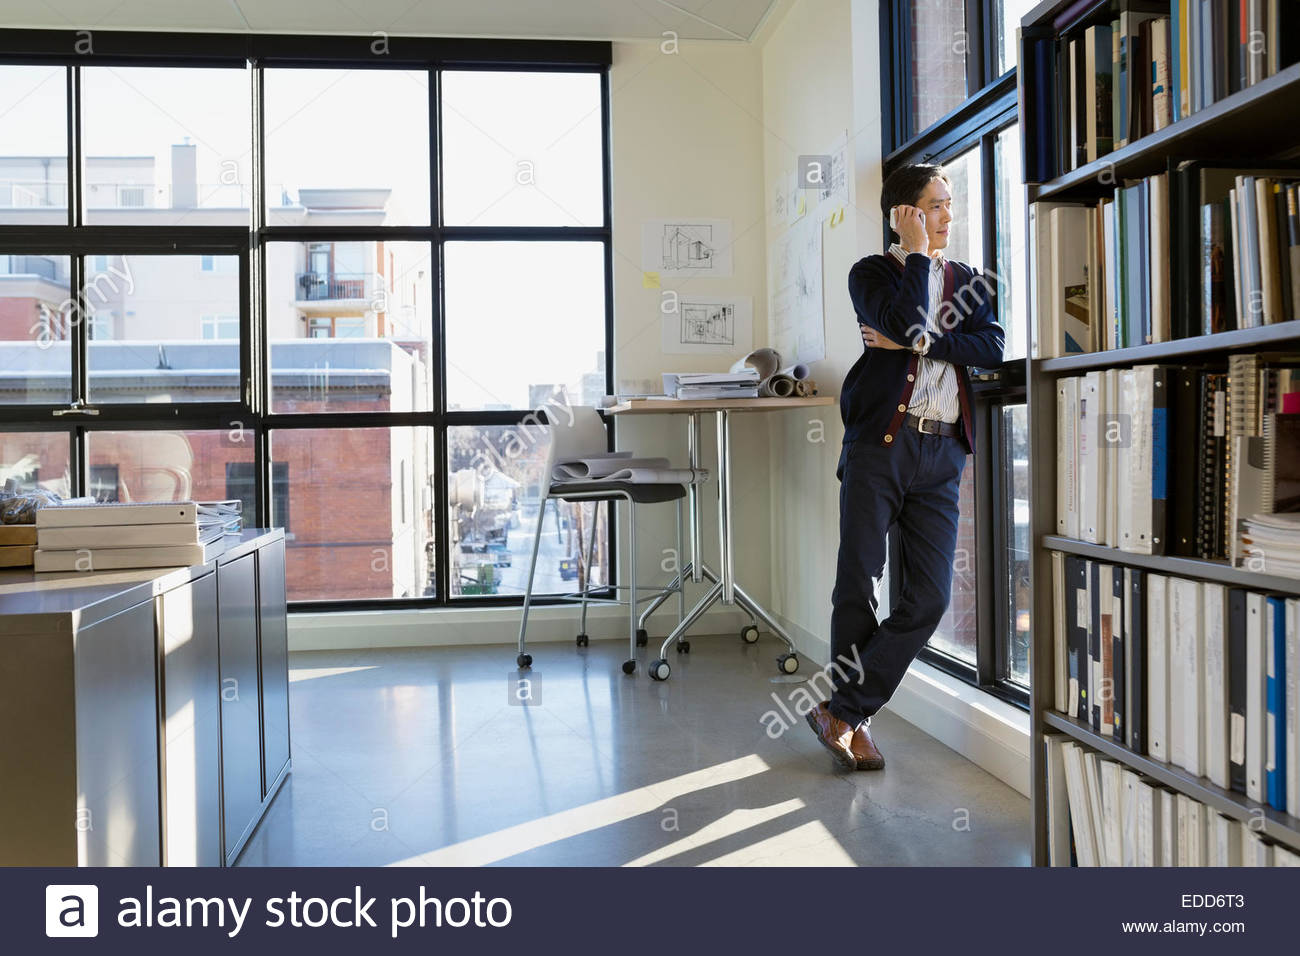 Businessman talking on cell phone at office window Photo Stock